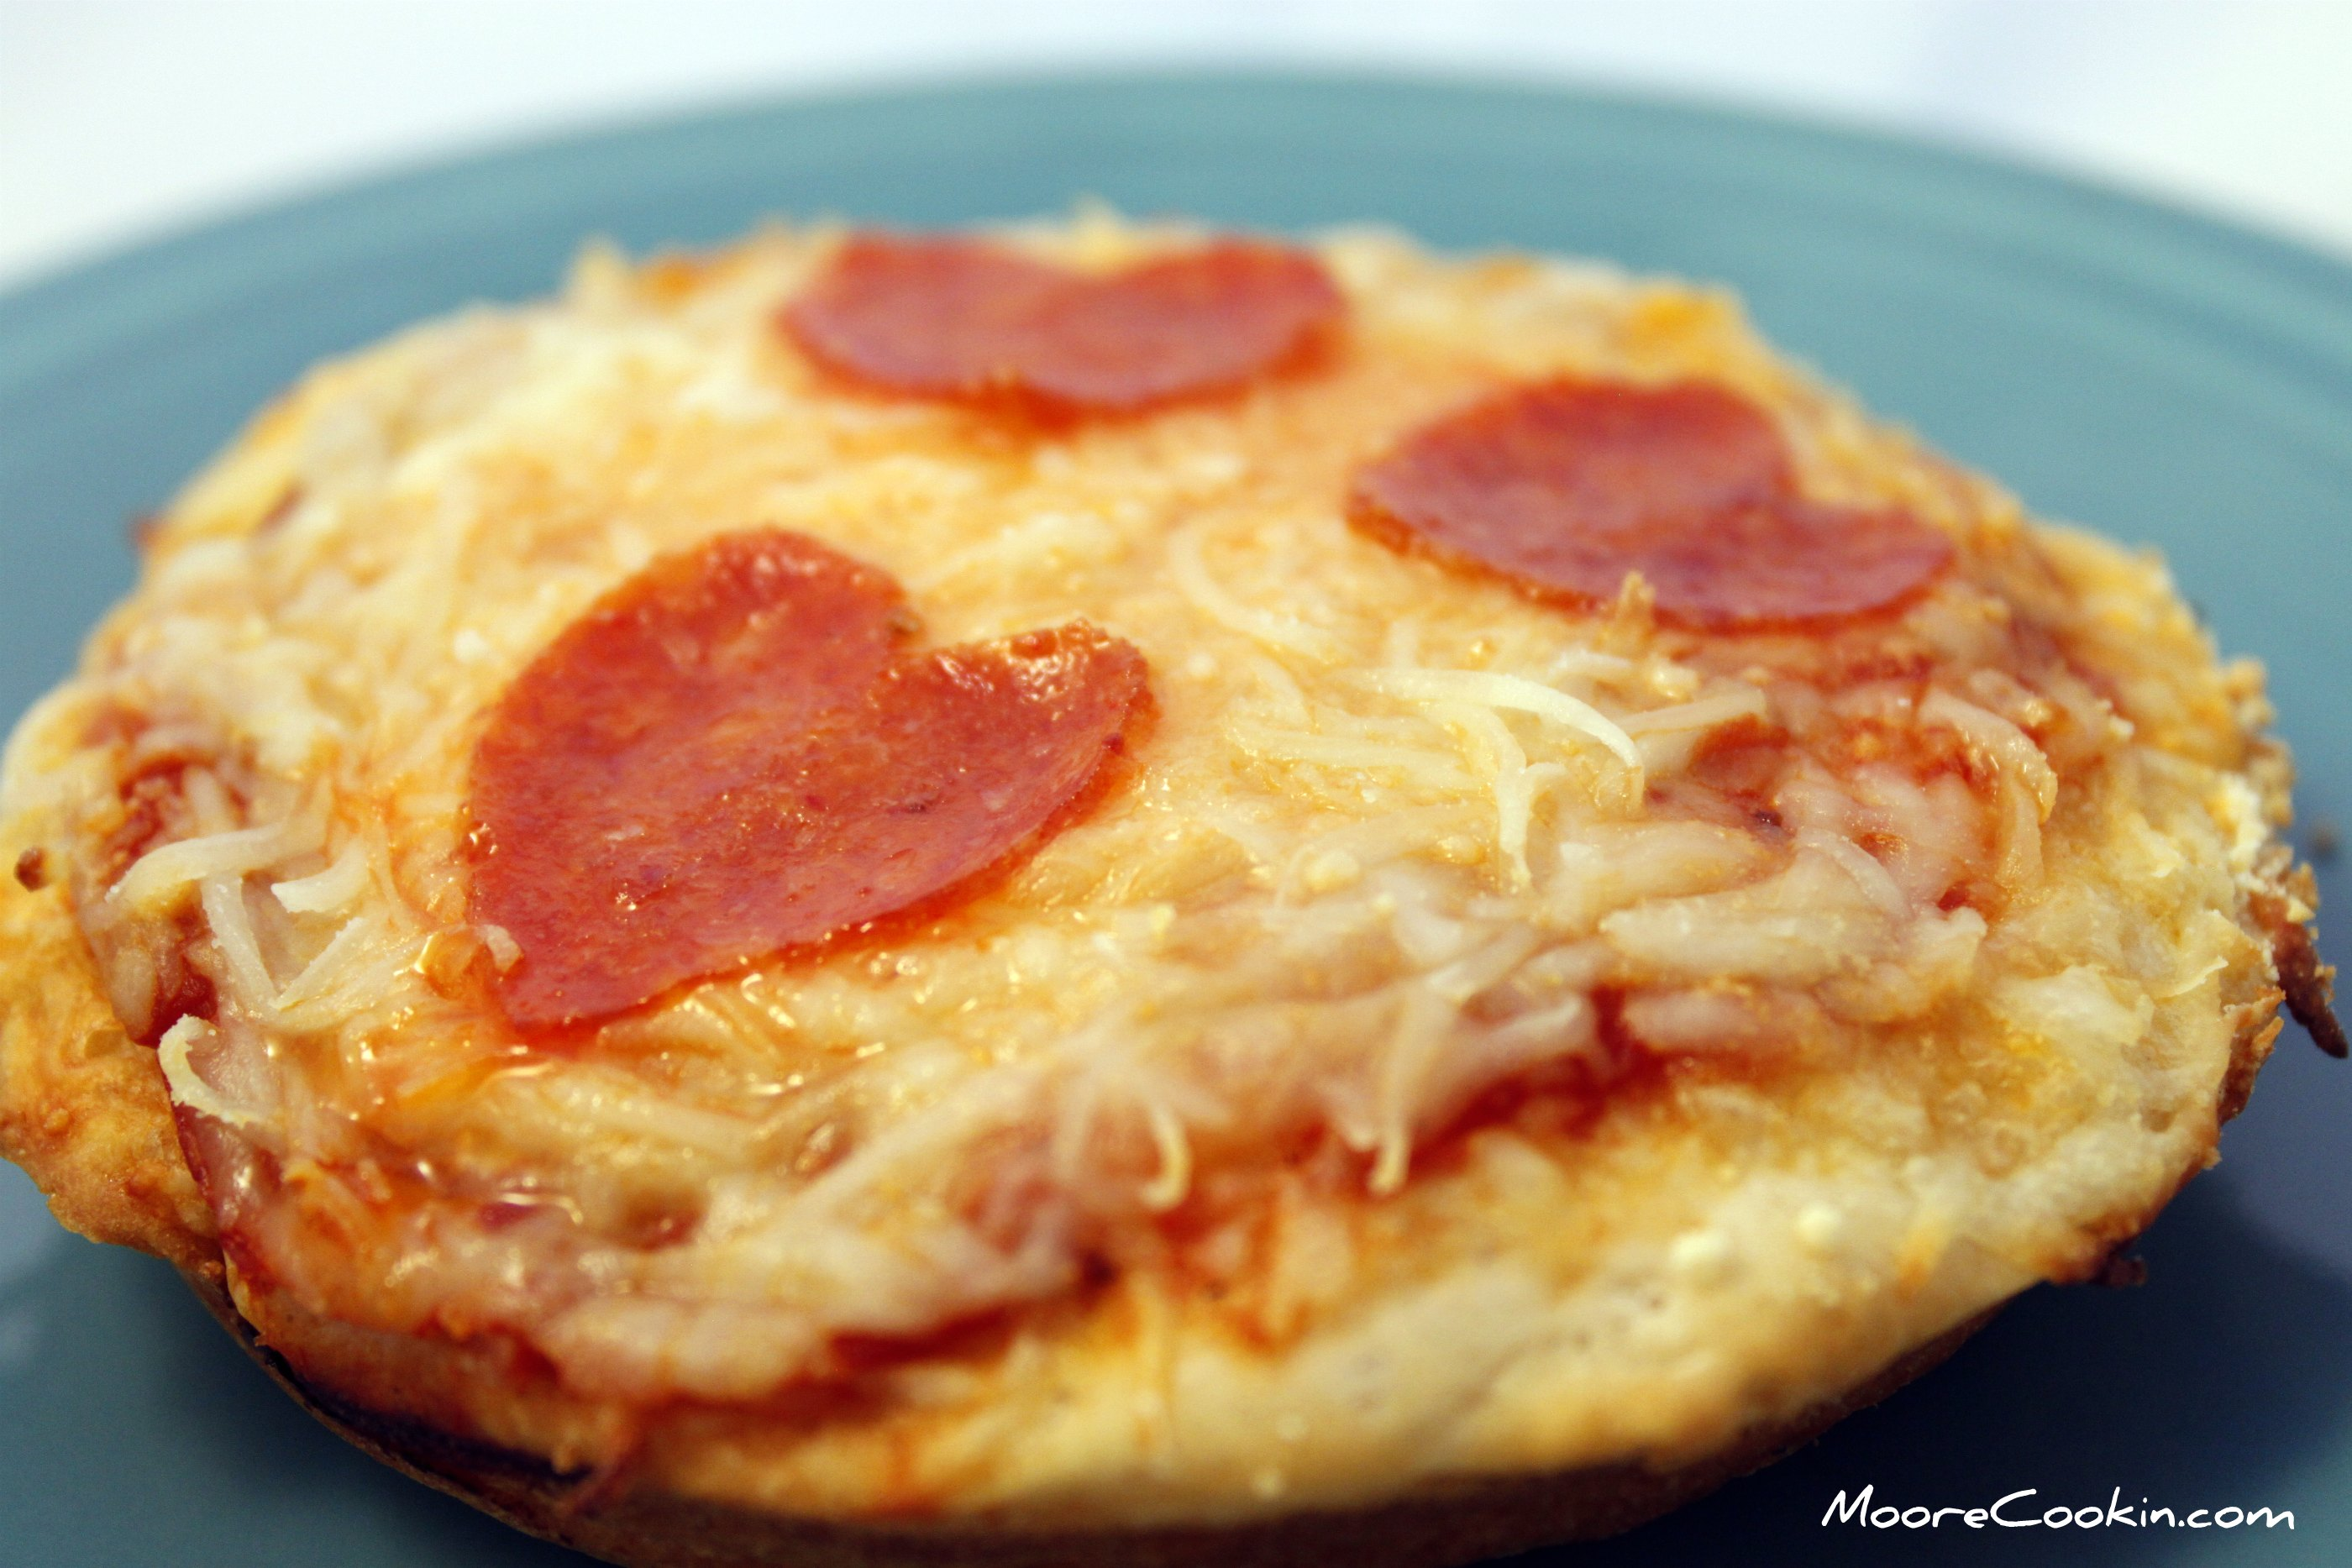 Here is what you will need 1 pan 1 oven 1 can of biscuits, thawed to room temp. 1 jar of Ragu pizzaquick pizza sauce 1 bag of shredded pizza cheese 1 bag of .